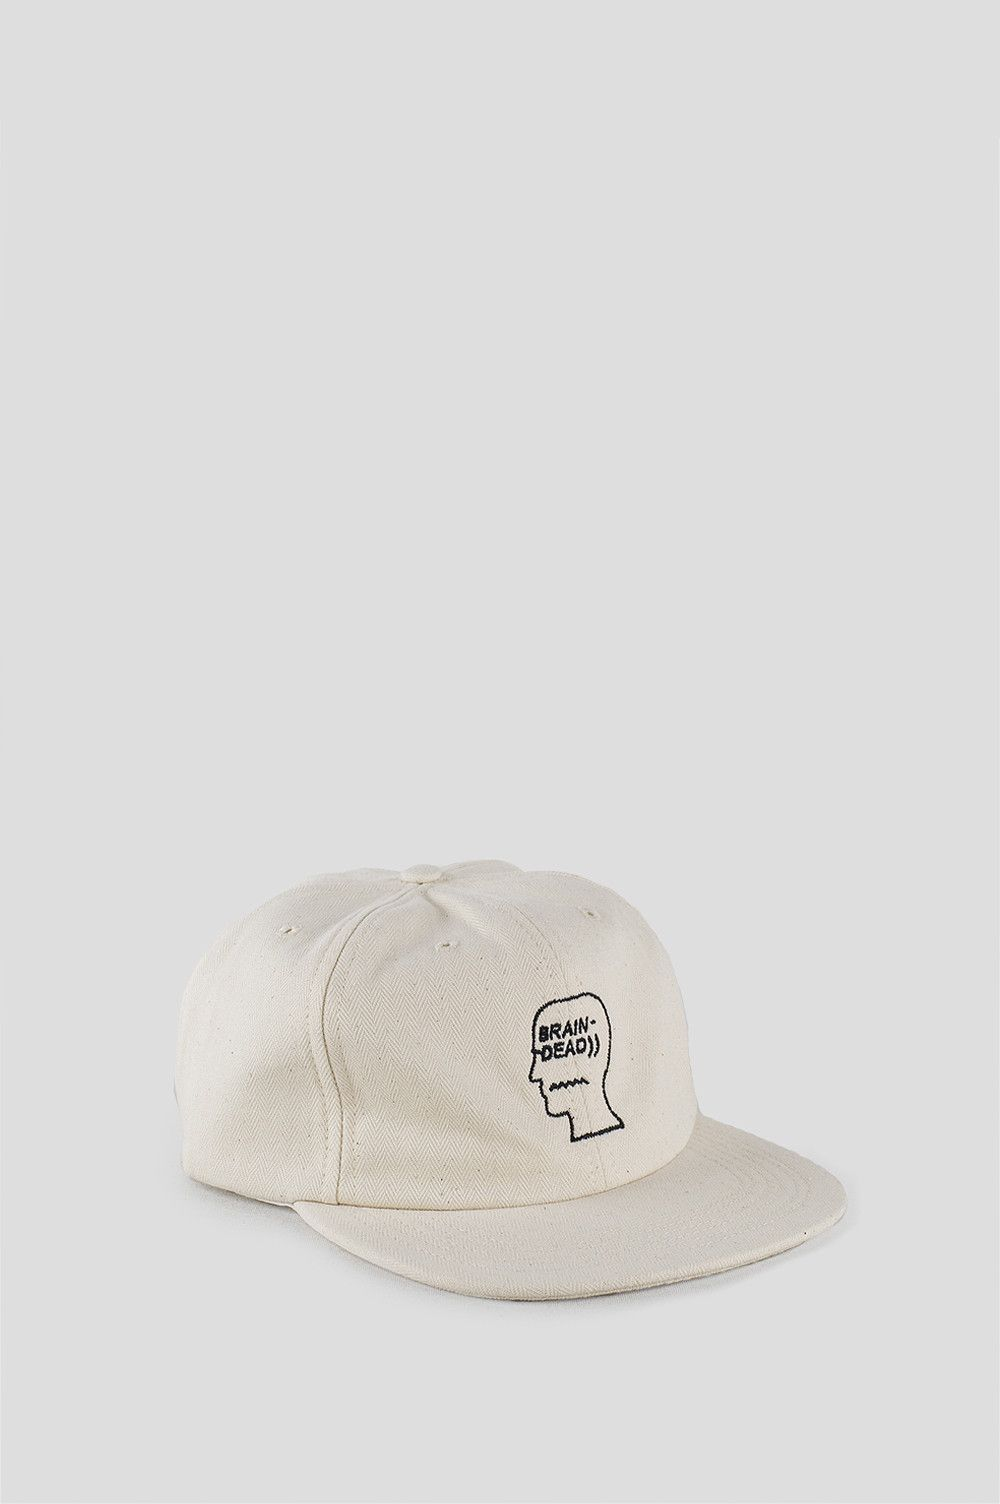 0301a70e21d BRAIN DEAD HERRINGBONE LOGO HAT NATURAL